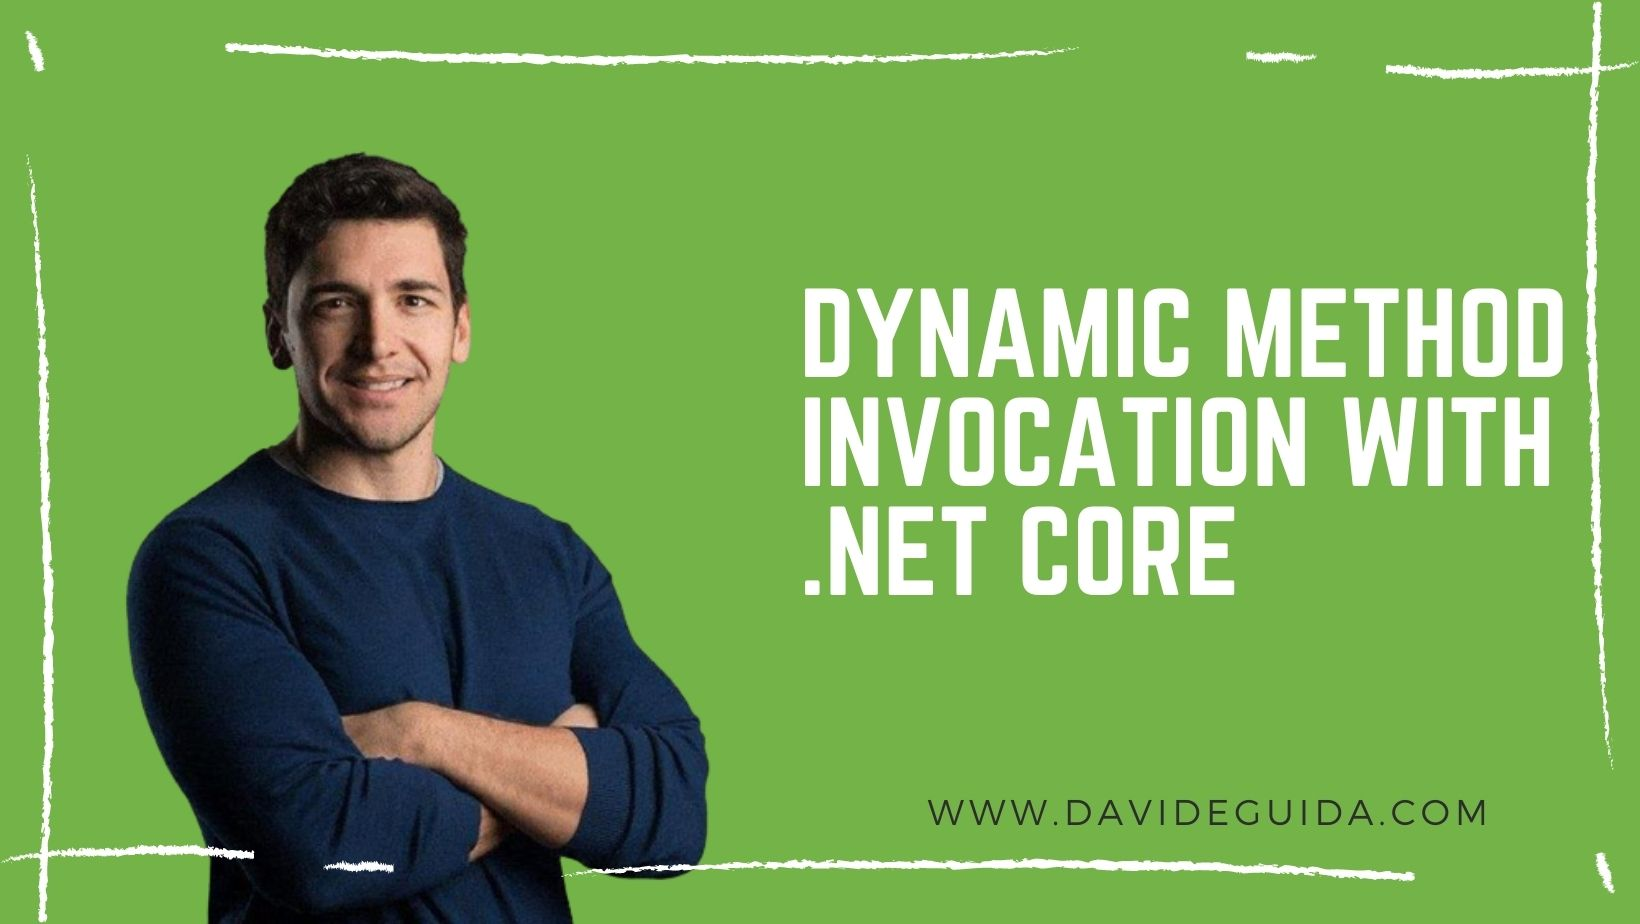 Dynamic method invocation with .NET Core